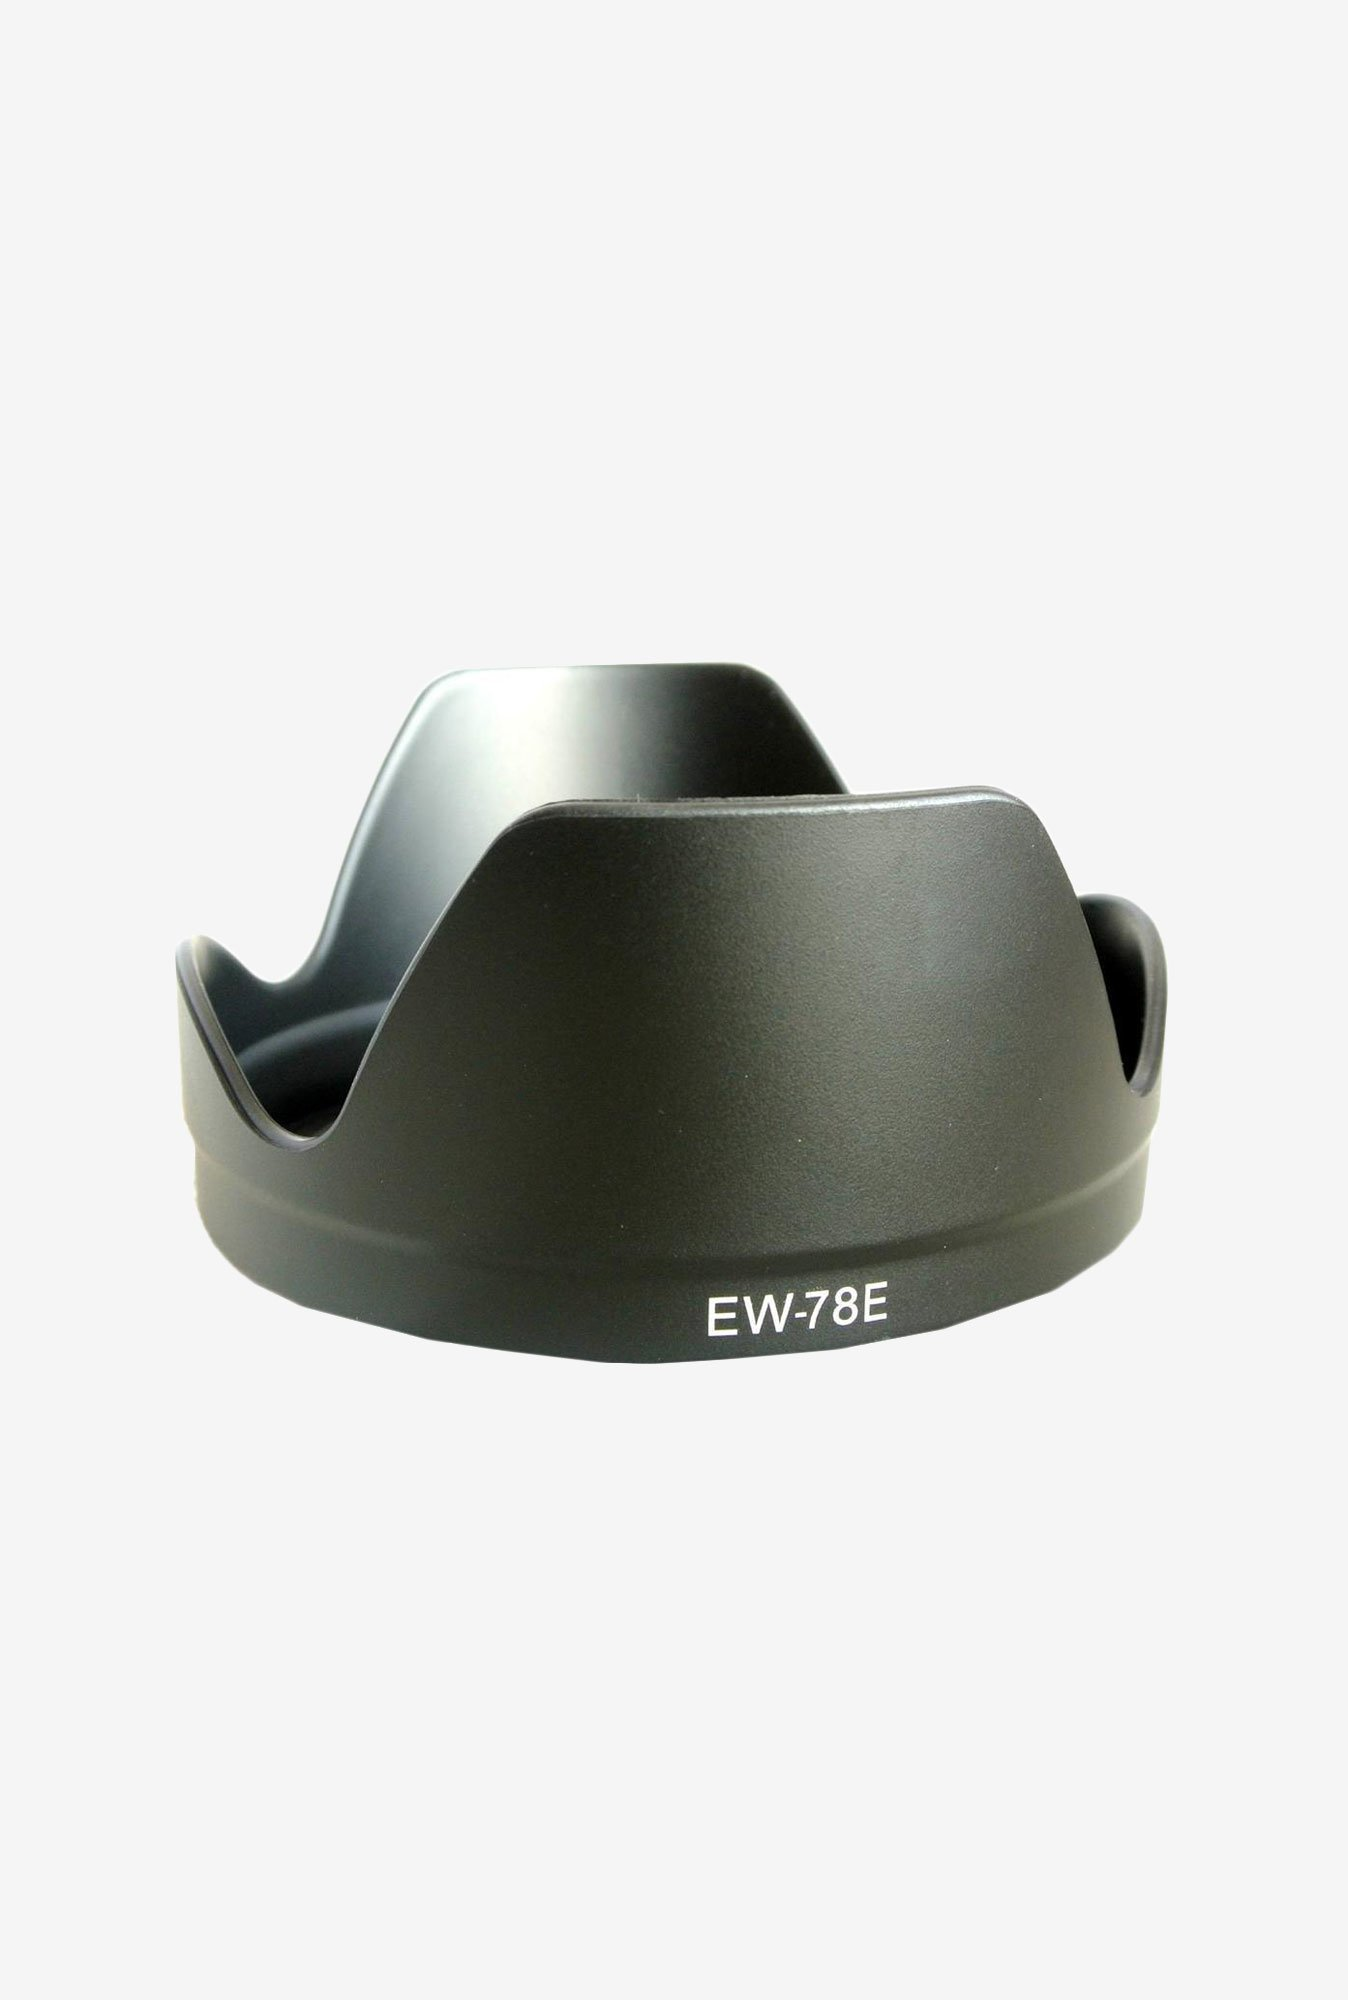 Cowboy Studio EW-78E Lens Hood For Canon EFS 15-85mm (Black)